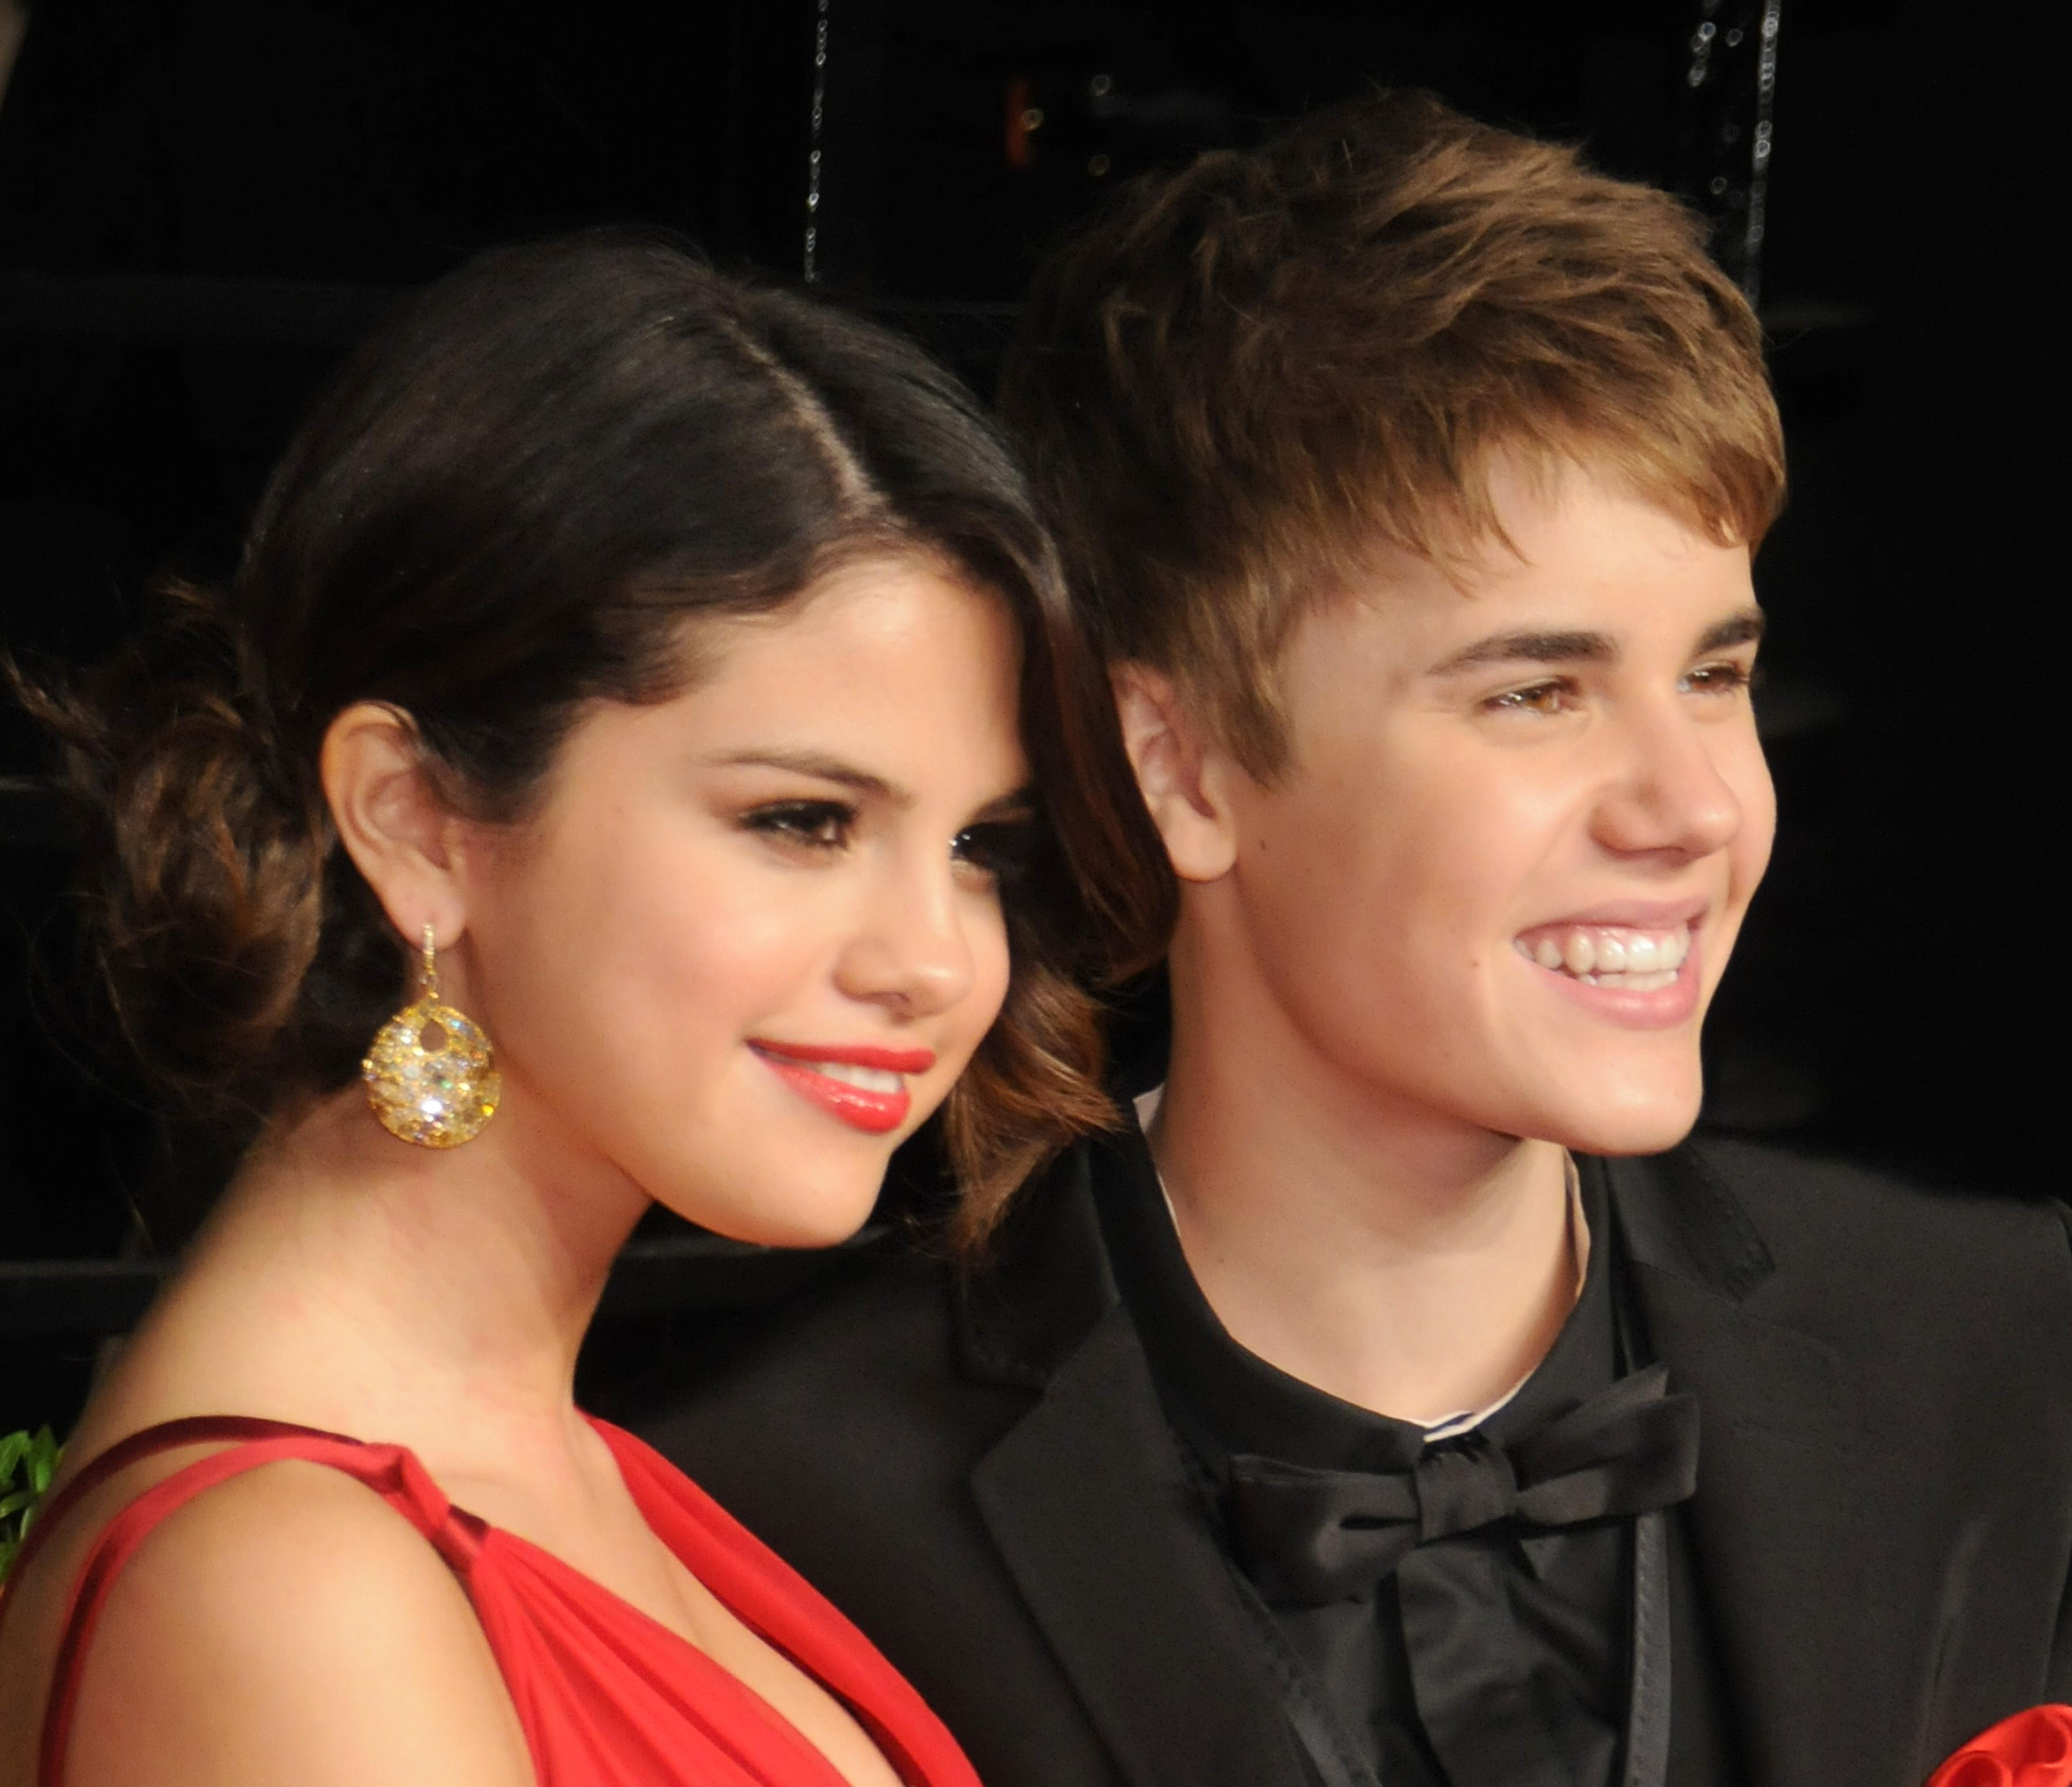 Selena Gomez wears a plunging red dress and Justin Bieber wears a black tux at the 2011 Vanity Fair Oscar party.